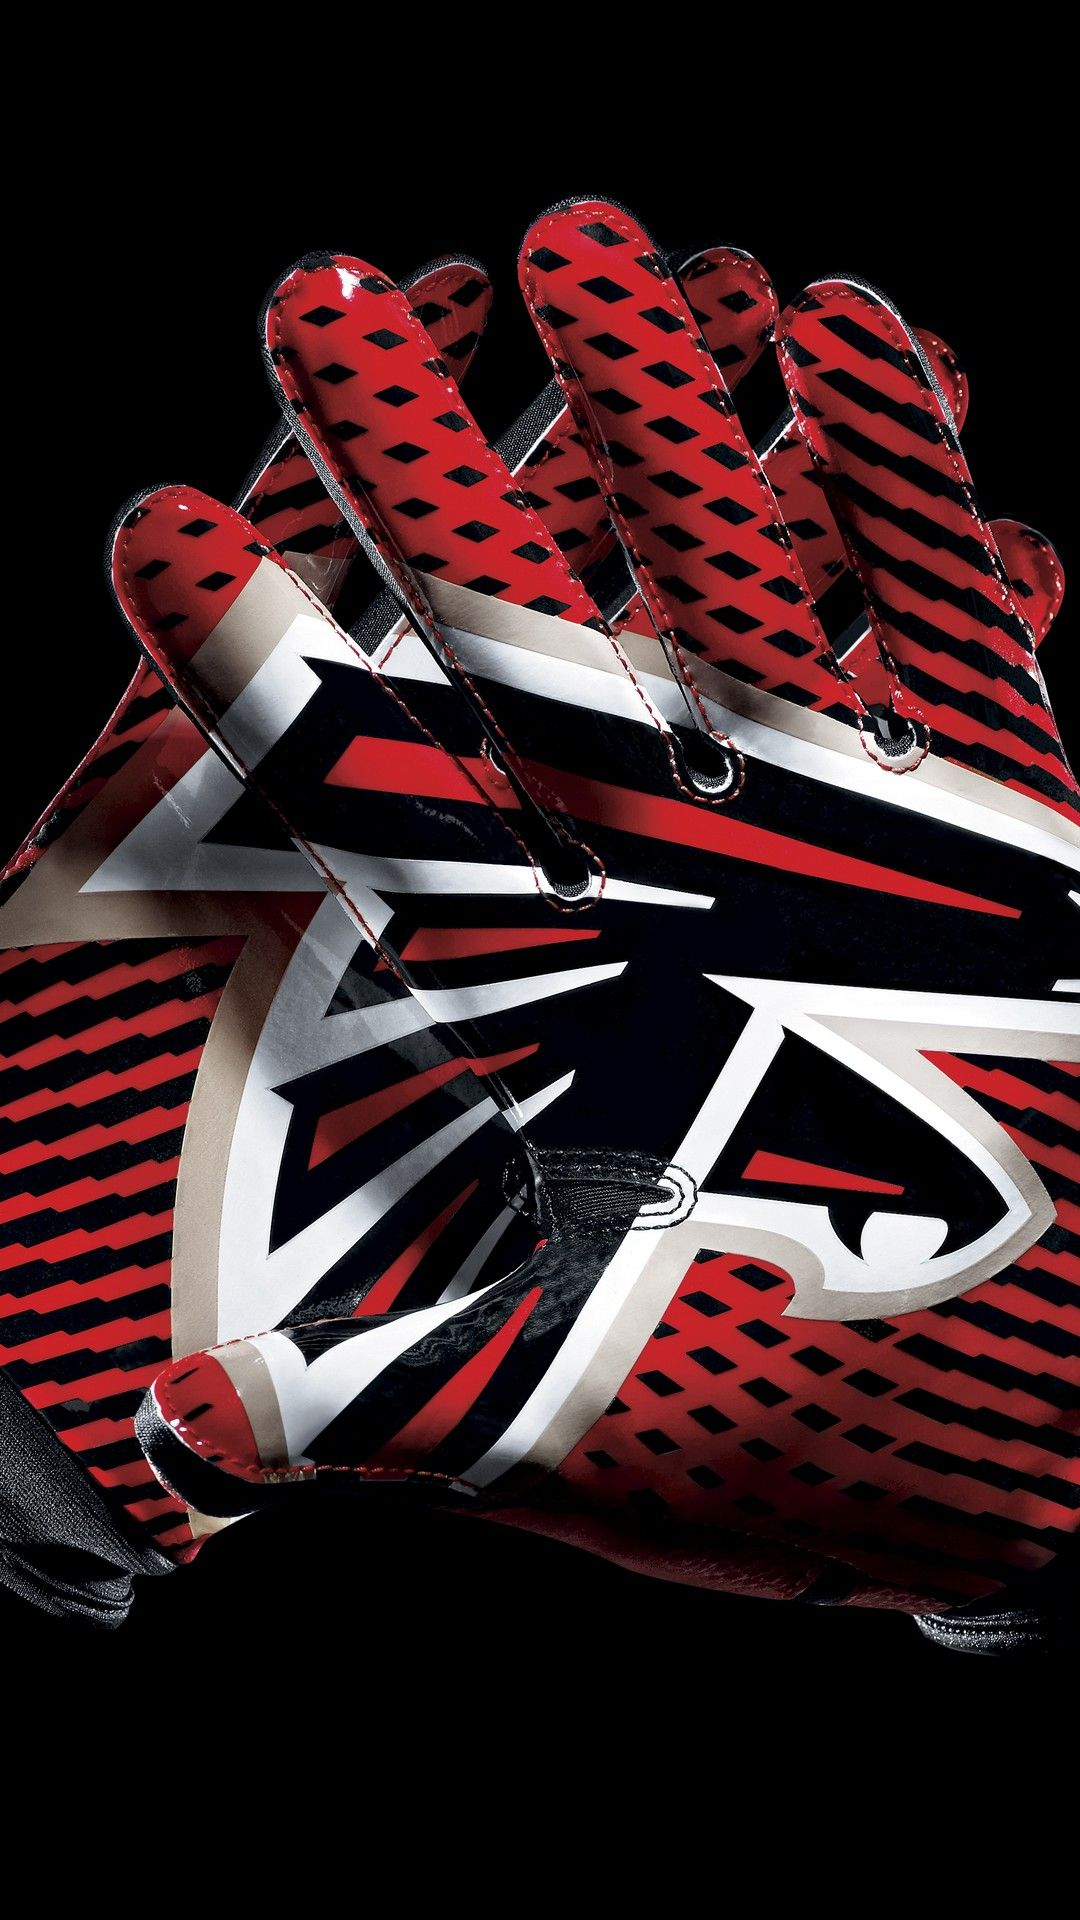 Atlanta Falcons Iphone Screen Lock Wallpaper Best Nfl Wallpaper Atlanta Falcons Wallpaper Atlanta Falcons Minnesota Vikings Wallpaper